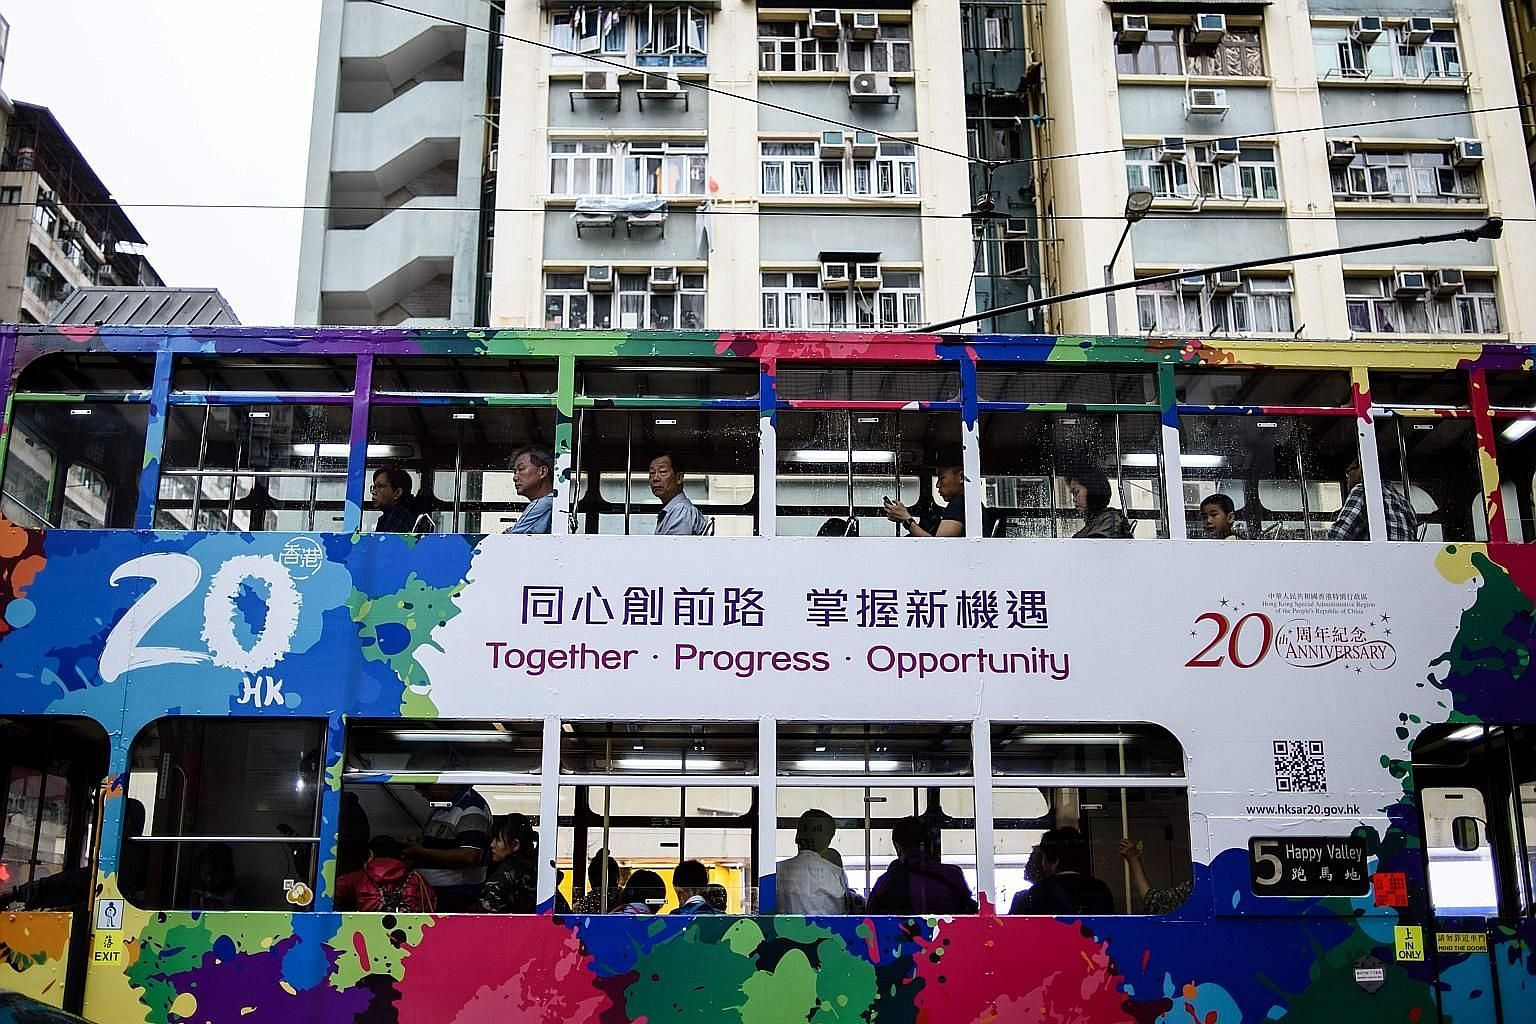 A tram in Hong Kong adorned with artwork commemorating the 20th anniversary of the city's handover to China by Britain. Chinese President Xi Jinping is expected to visit the city for the July 1 anniversary, his first trip there since coming to power